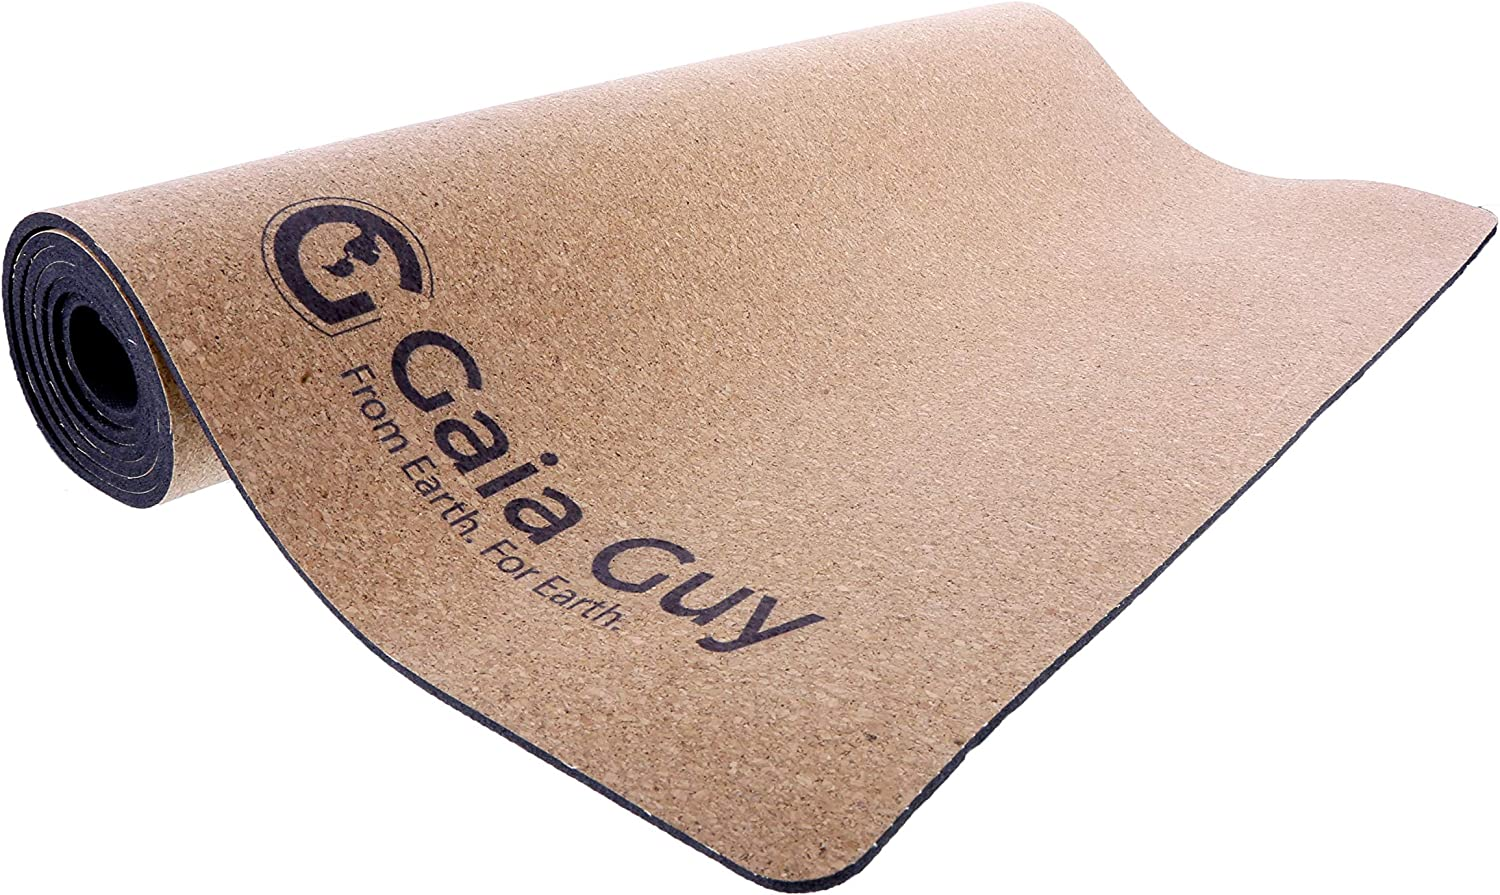 Gaia Guy Natural Cork and Natural Rubber Yoga Mat, 72